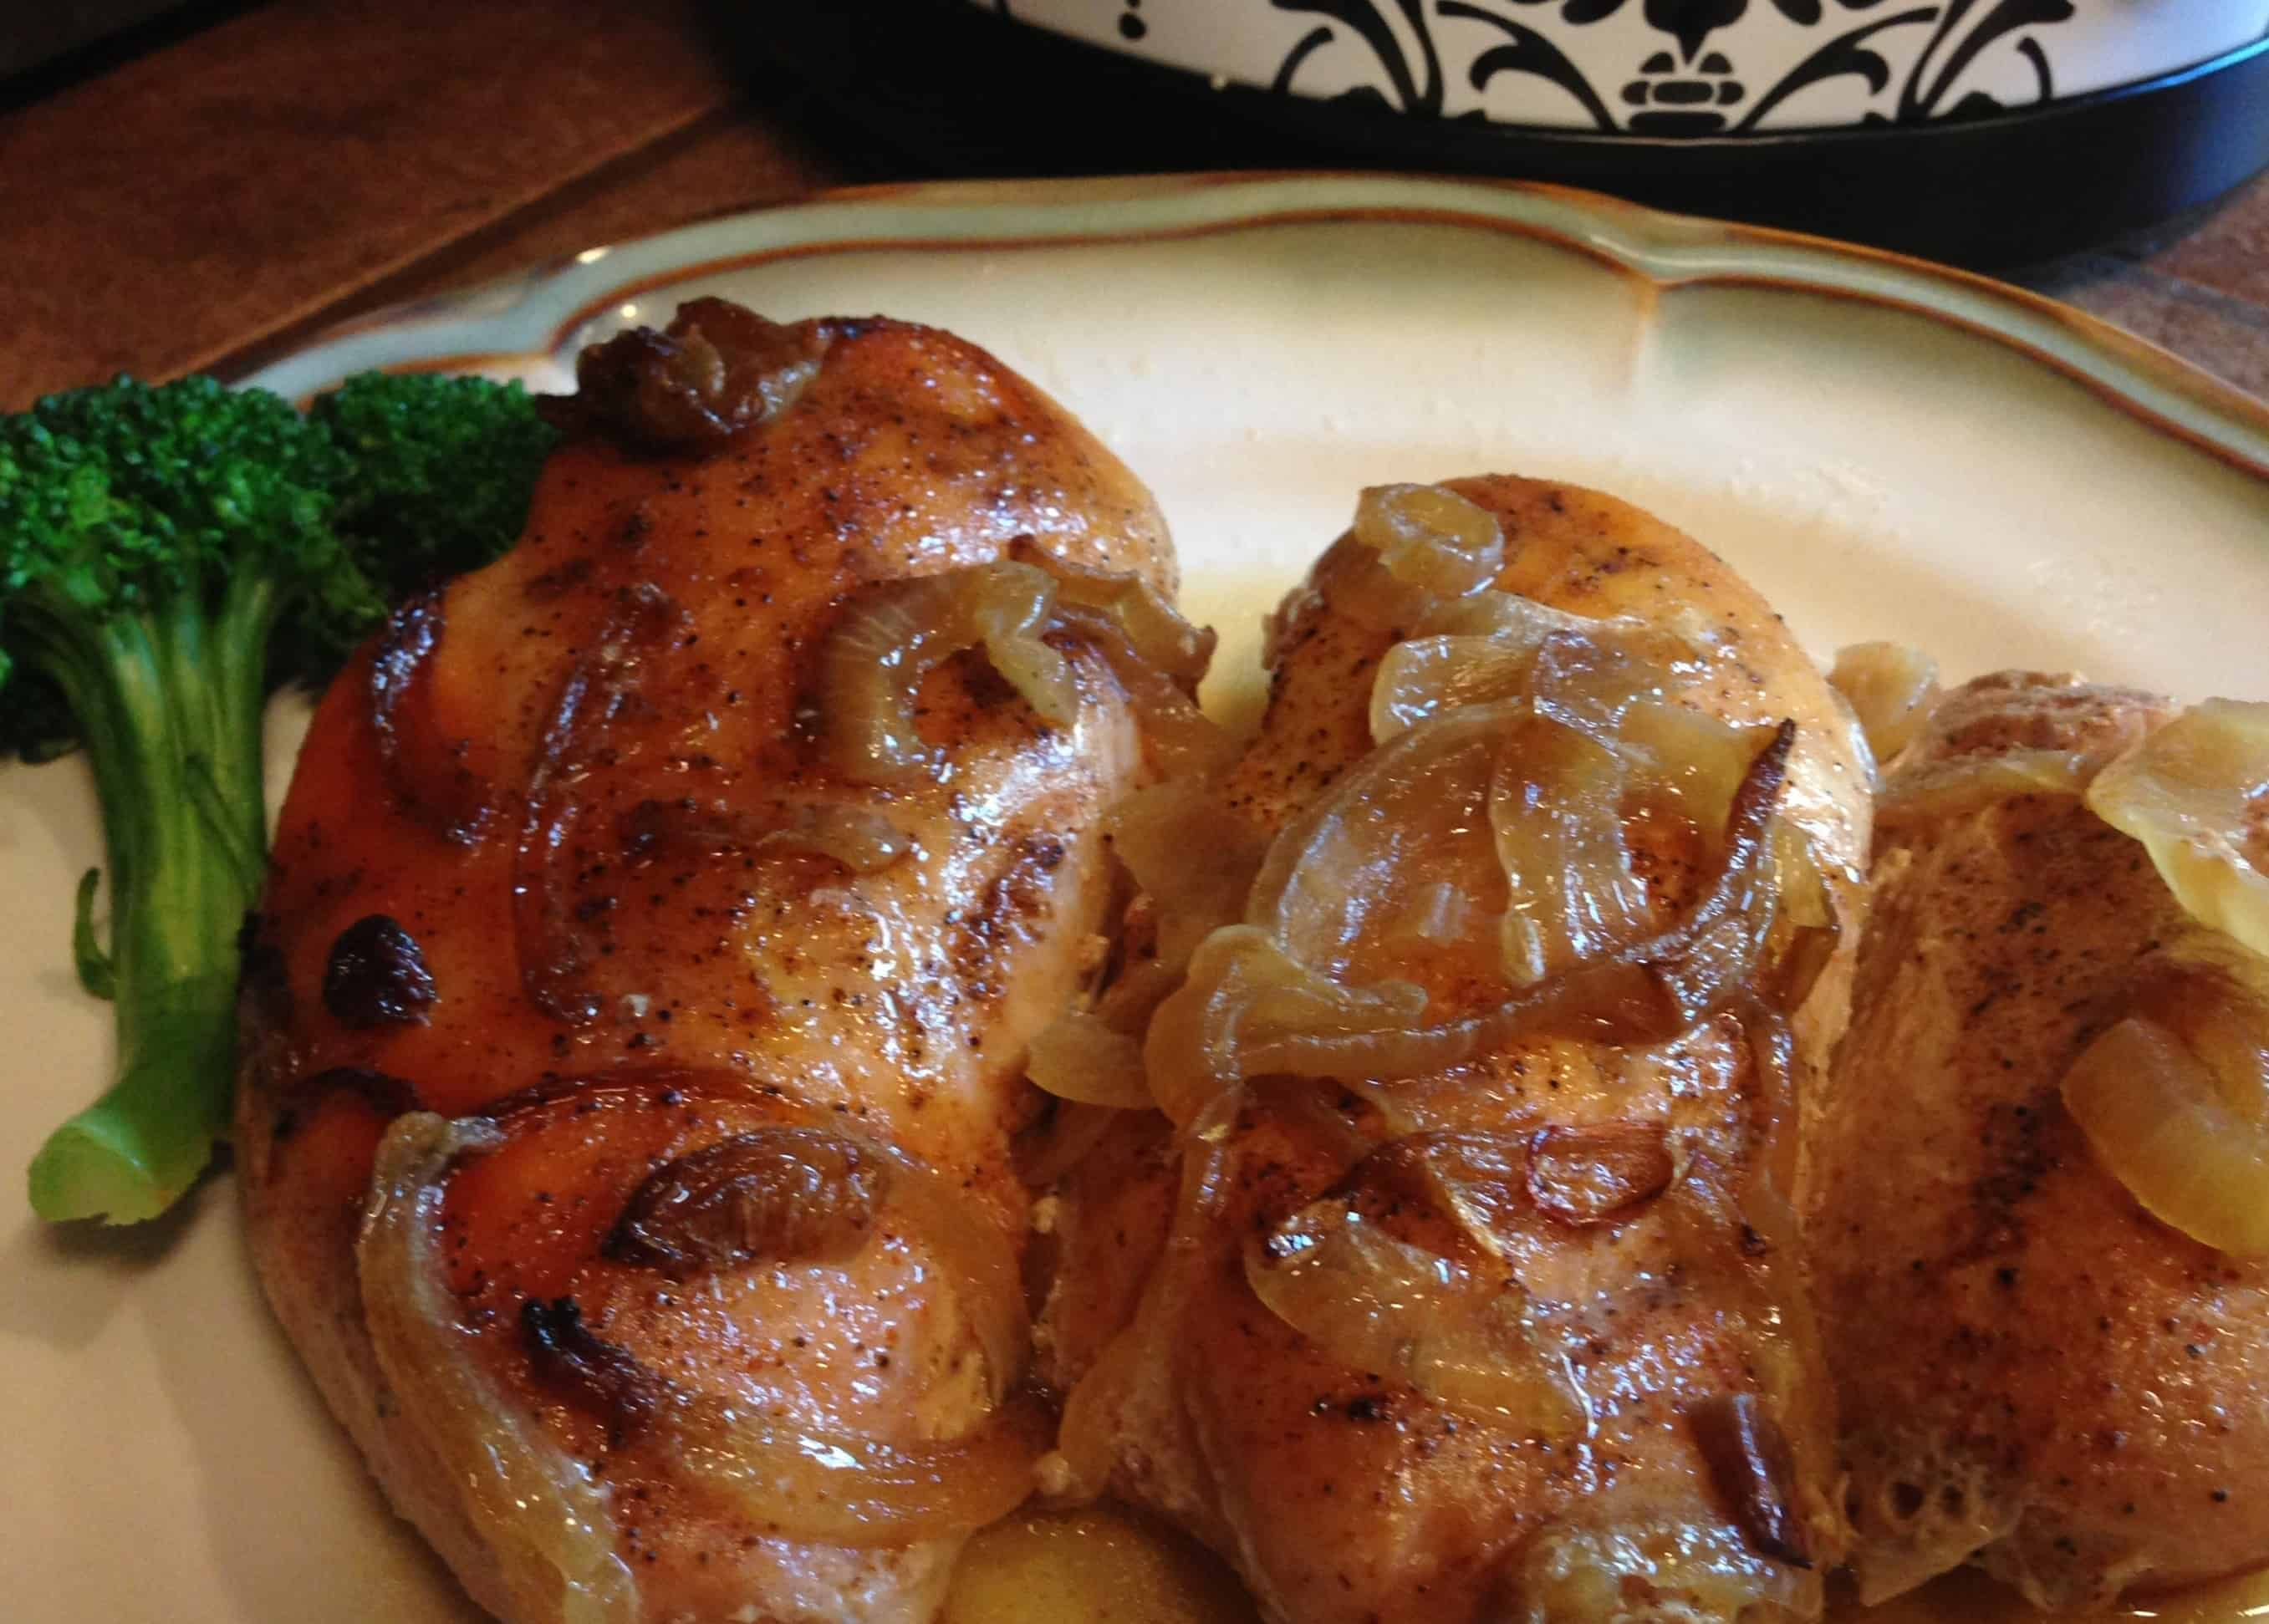 Gluten free baked chicken in the crock-pot